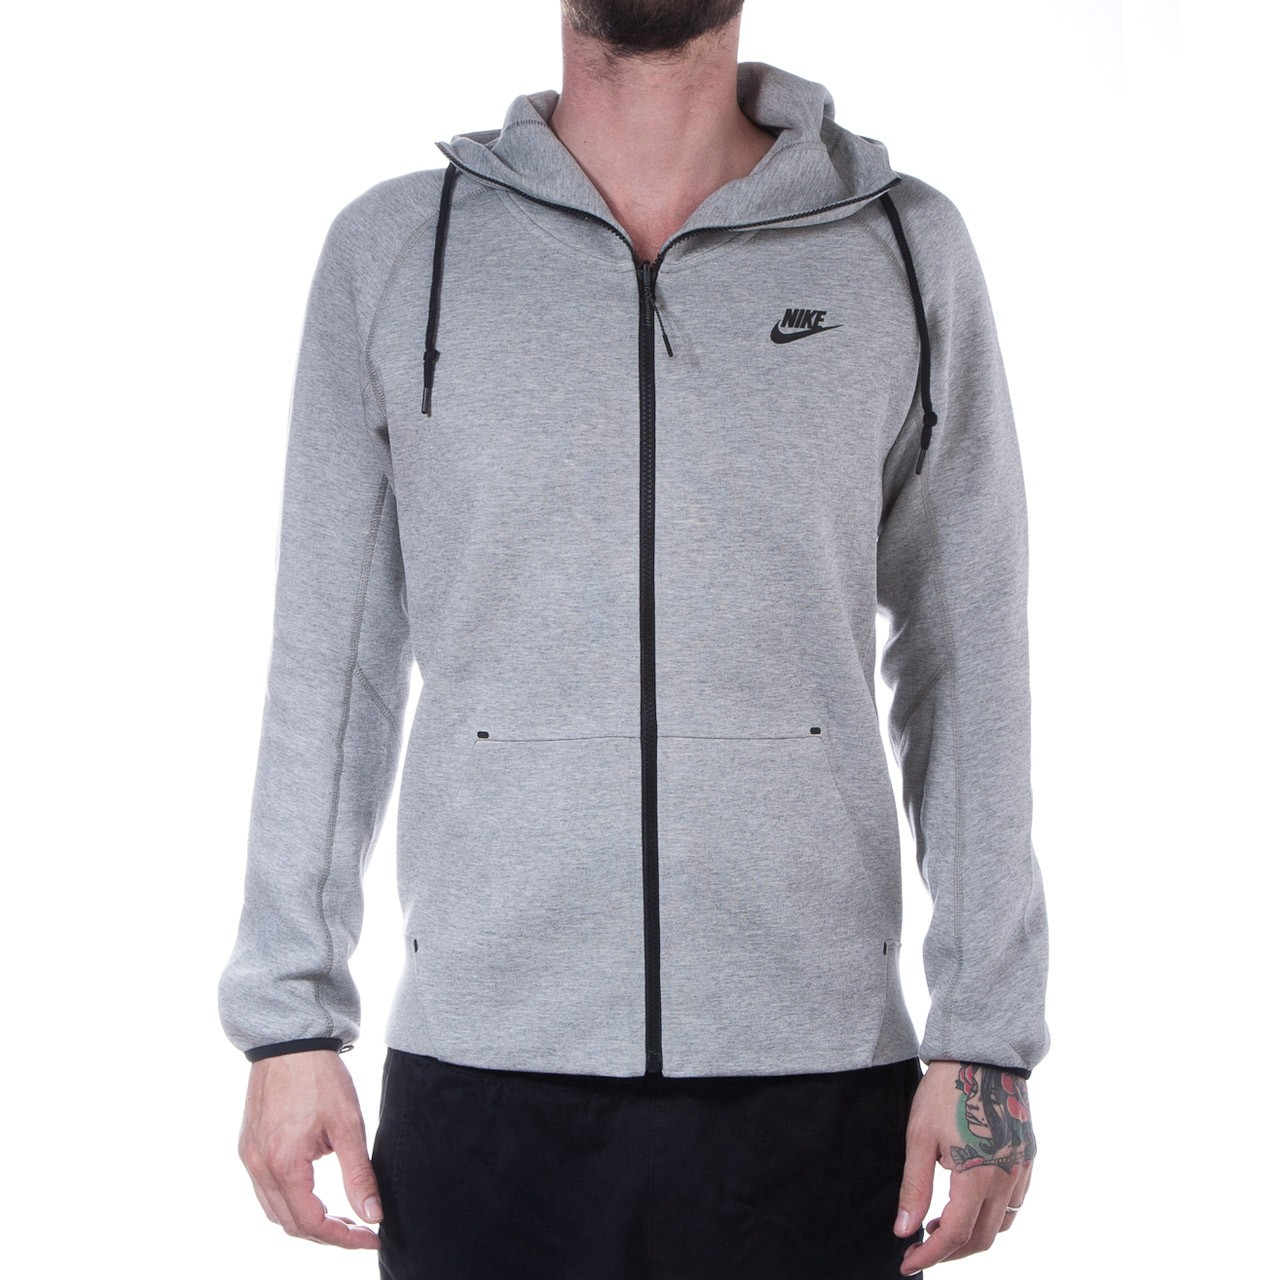 46e68ccf72a5 Nike 2 in 1 Tech Jacket (Grey   Black)